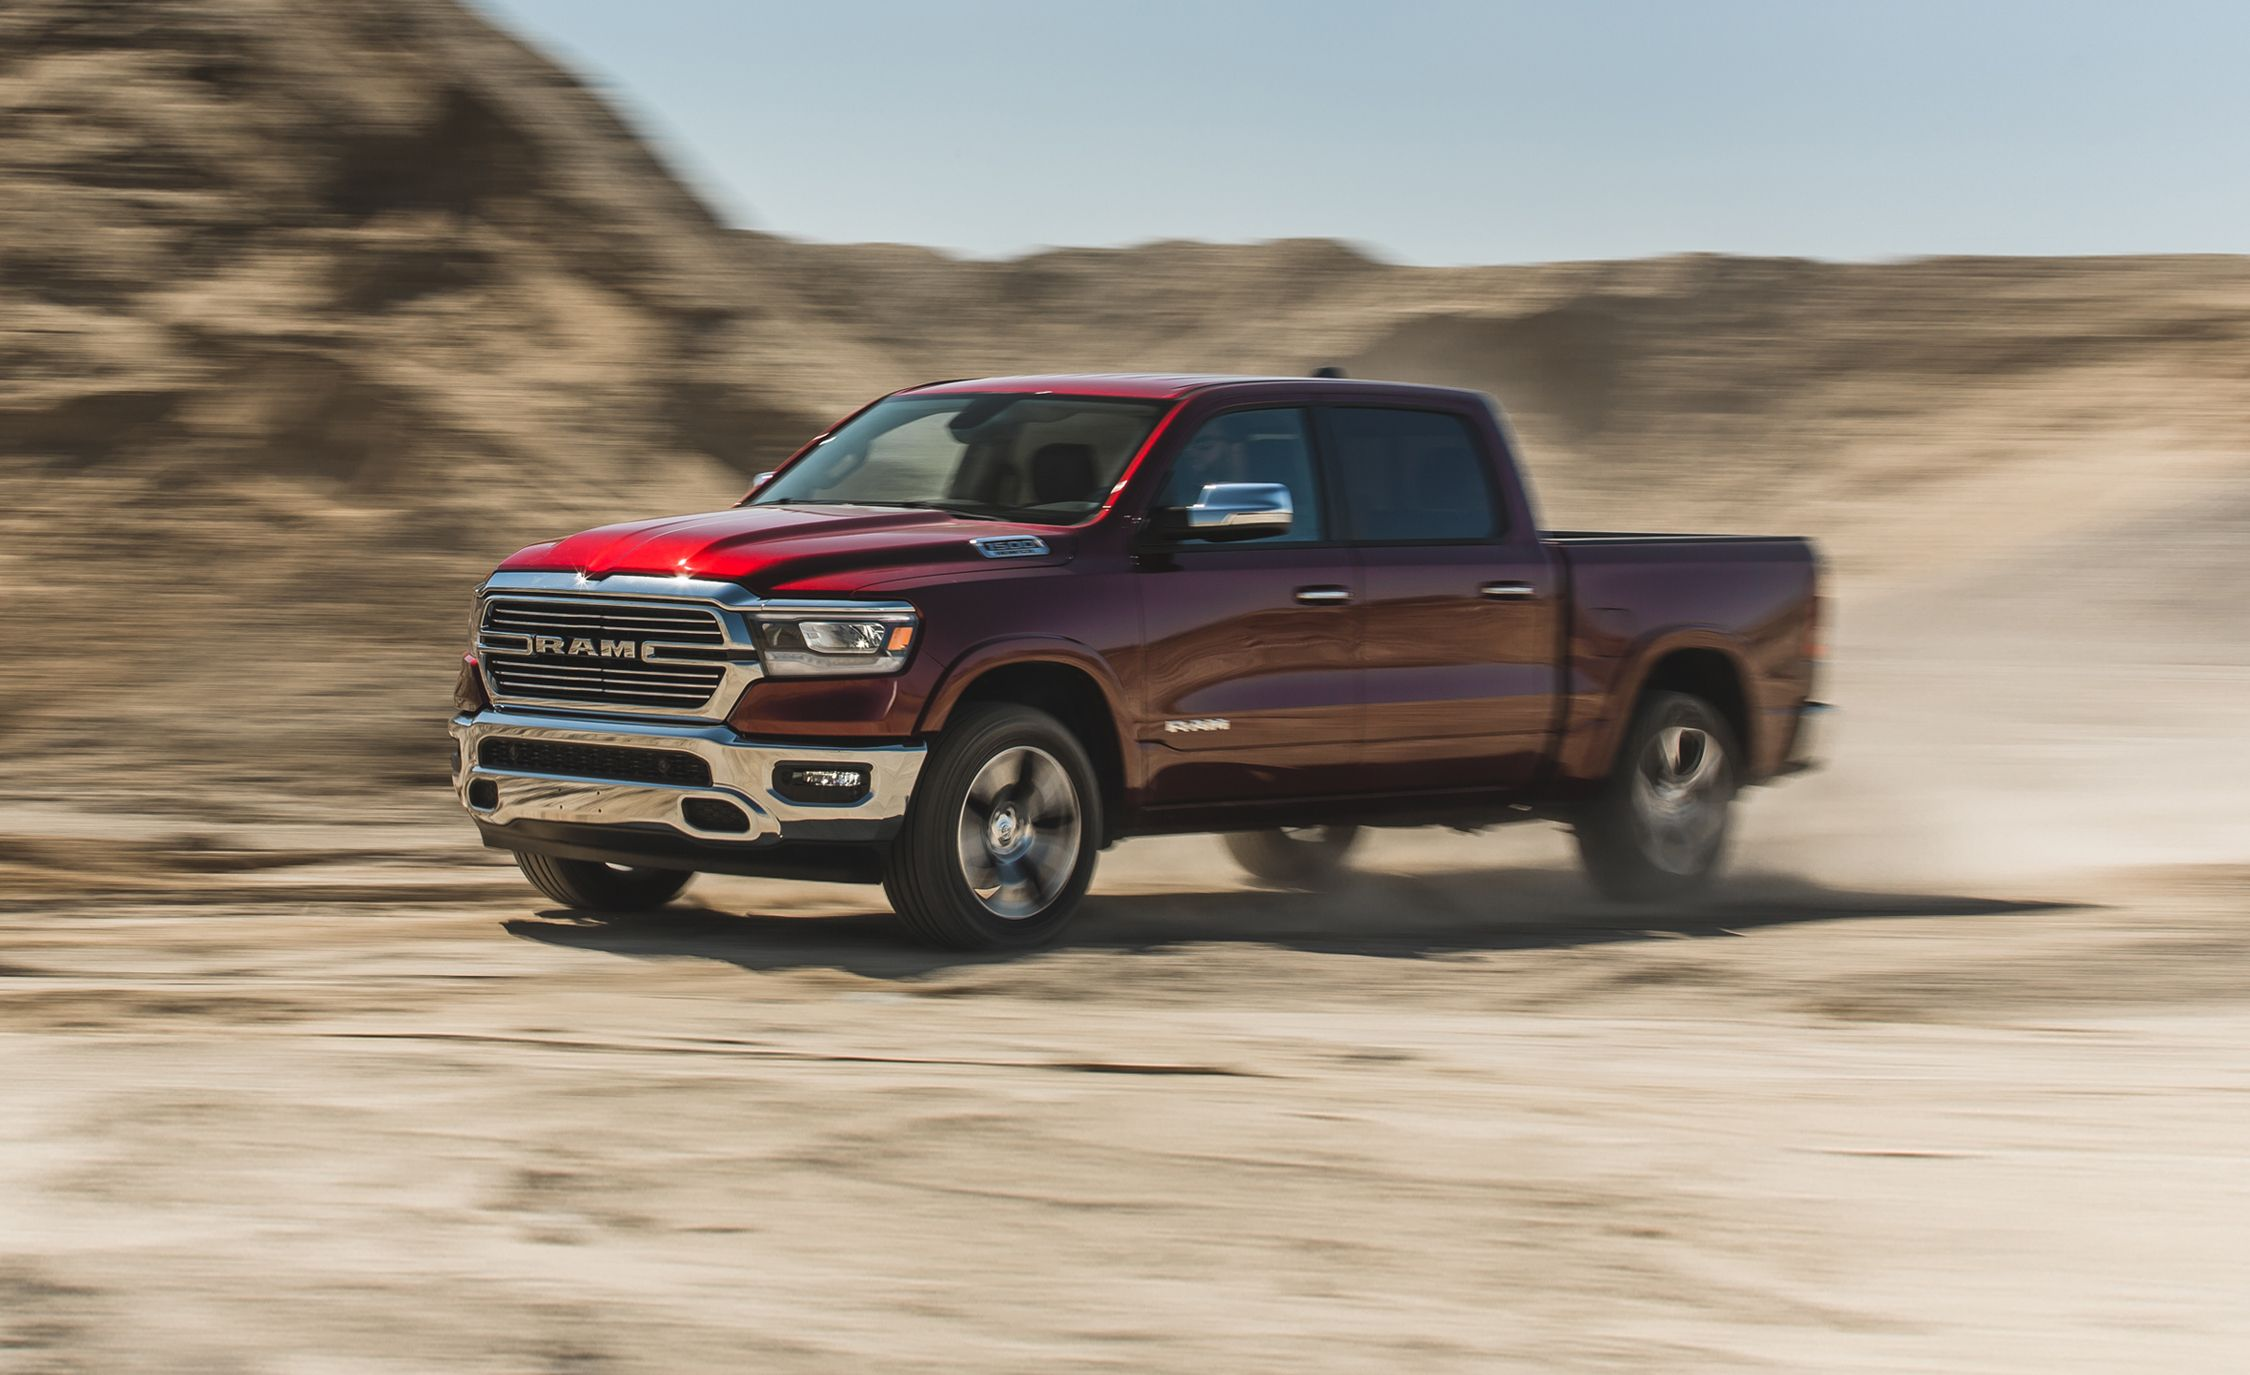 2019 Ram 1500 Laramie Crew Cab A Refined Take On The Pickup